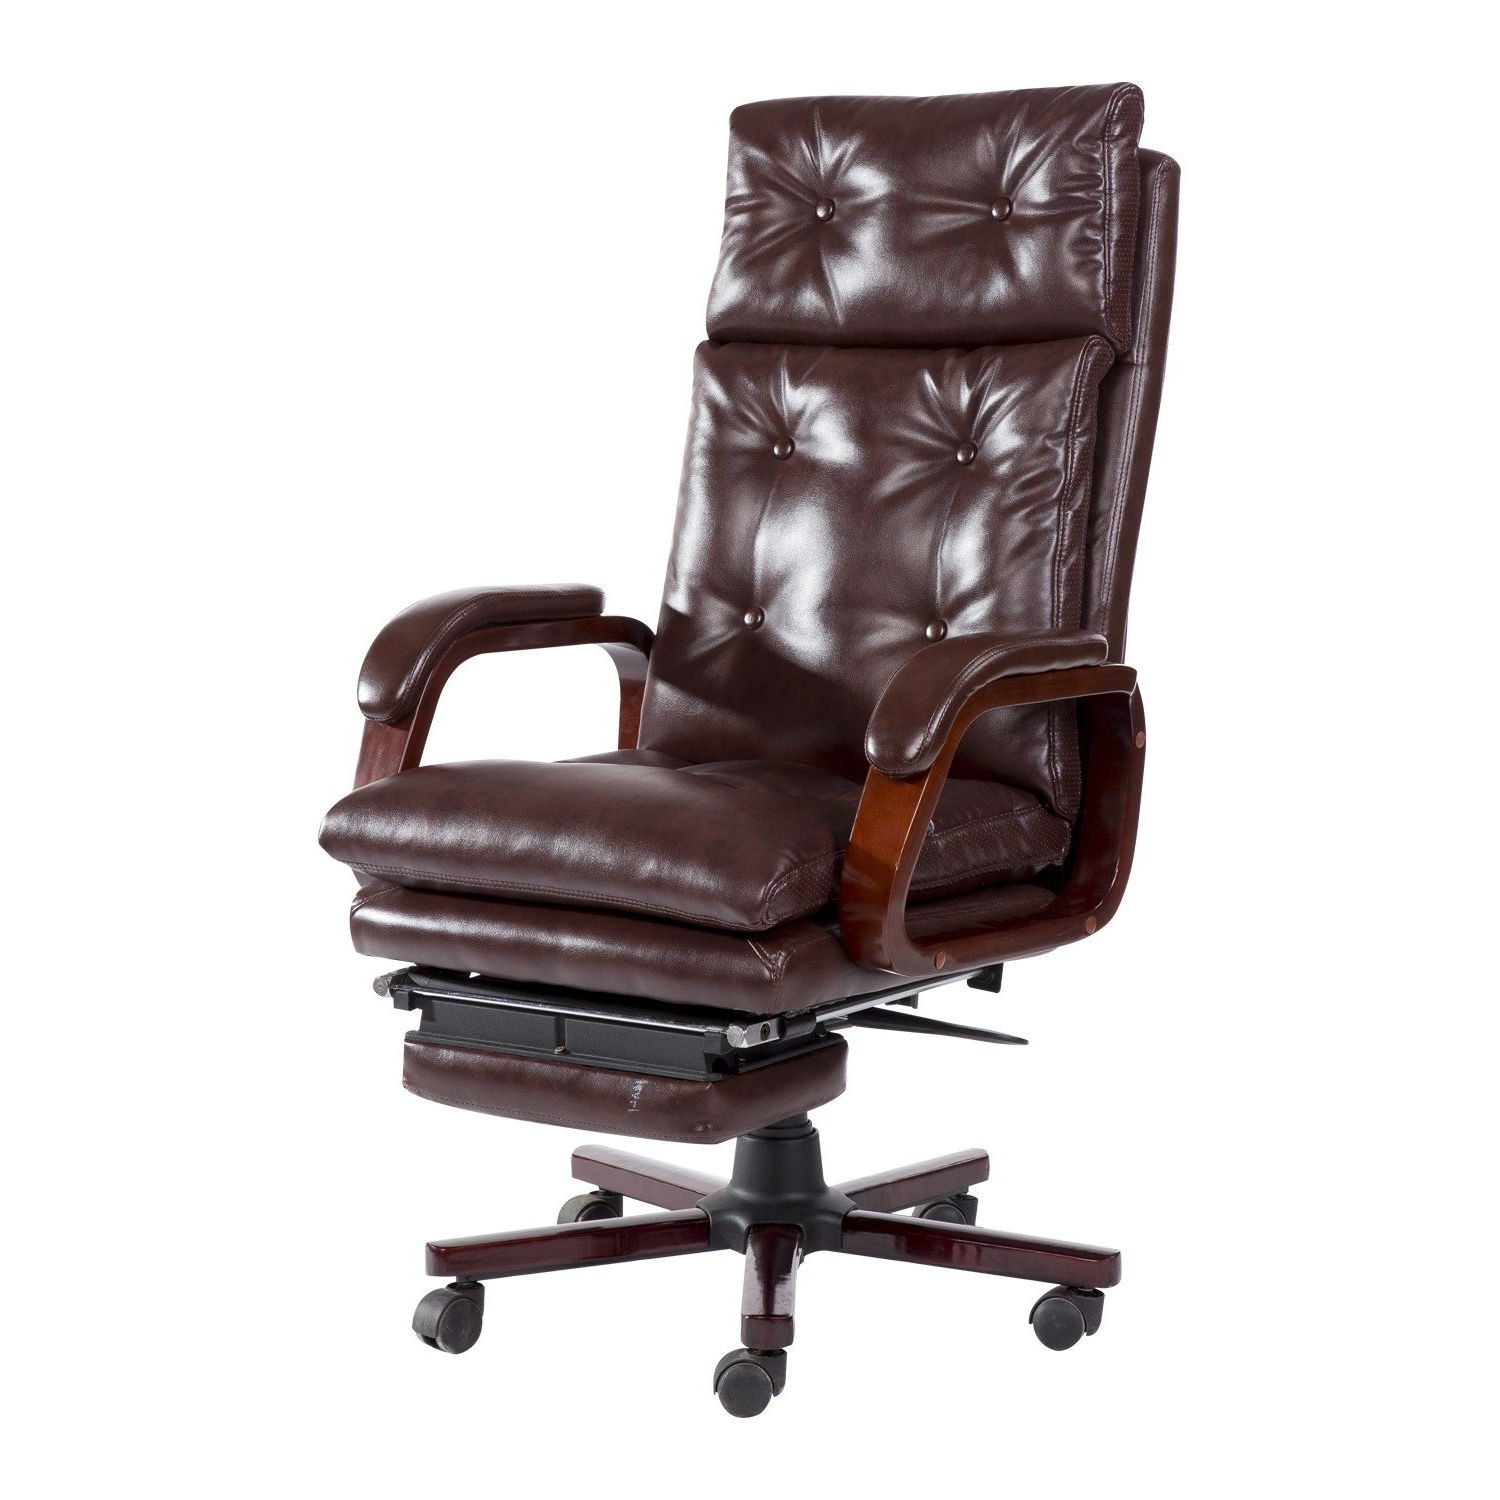 Executive Reclining Office Chairs In Latest Homcom High Back Pu Leather Executive Reclining Office Chair With (Gallery 10 of 20)